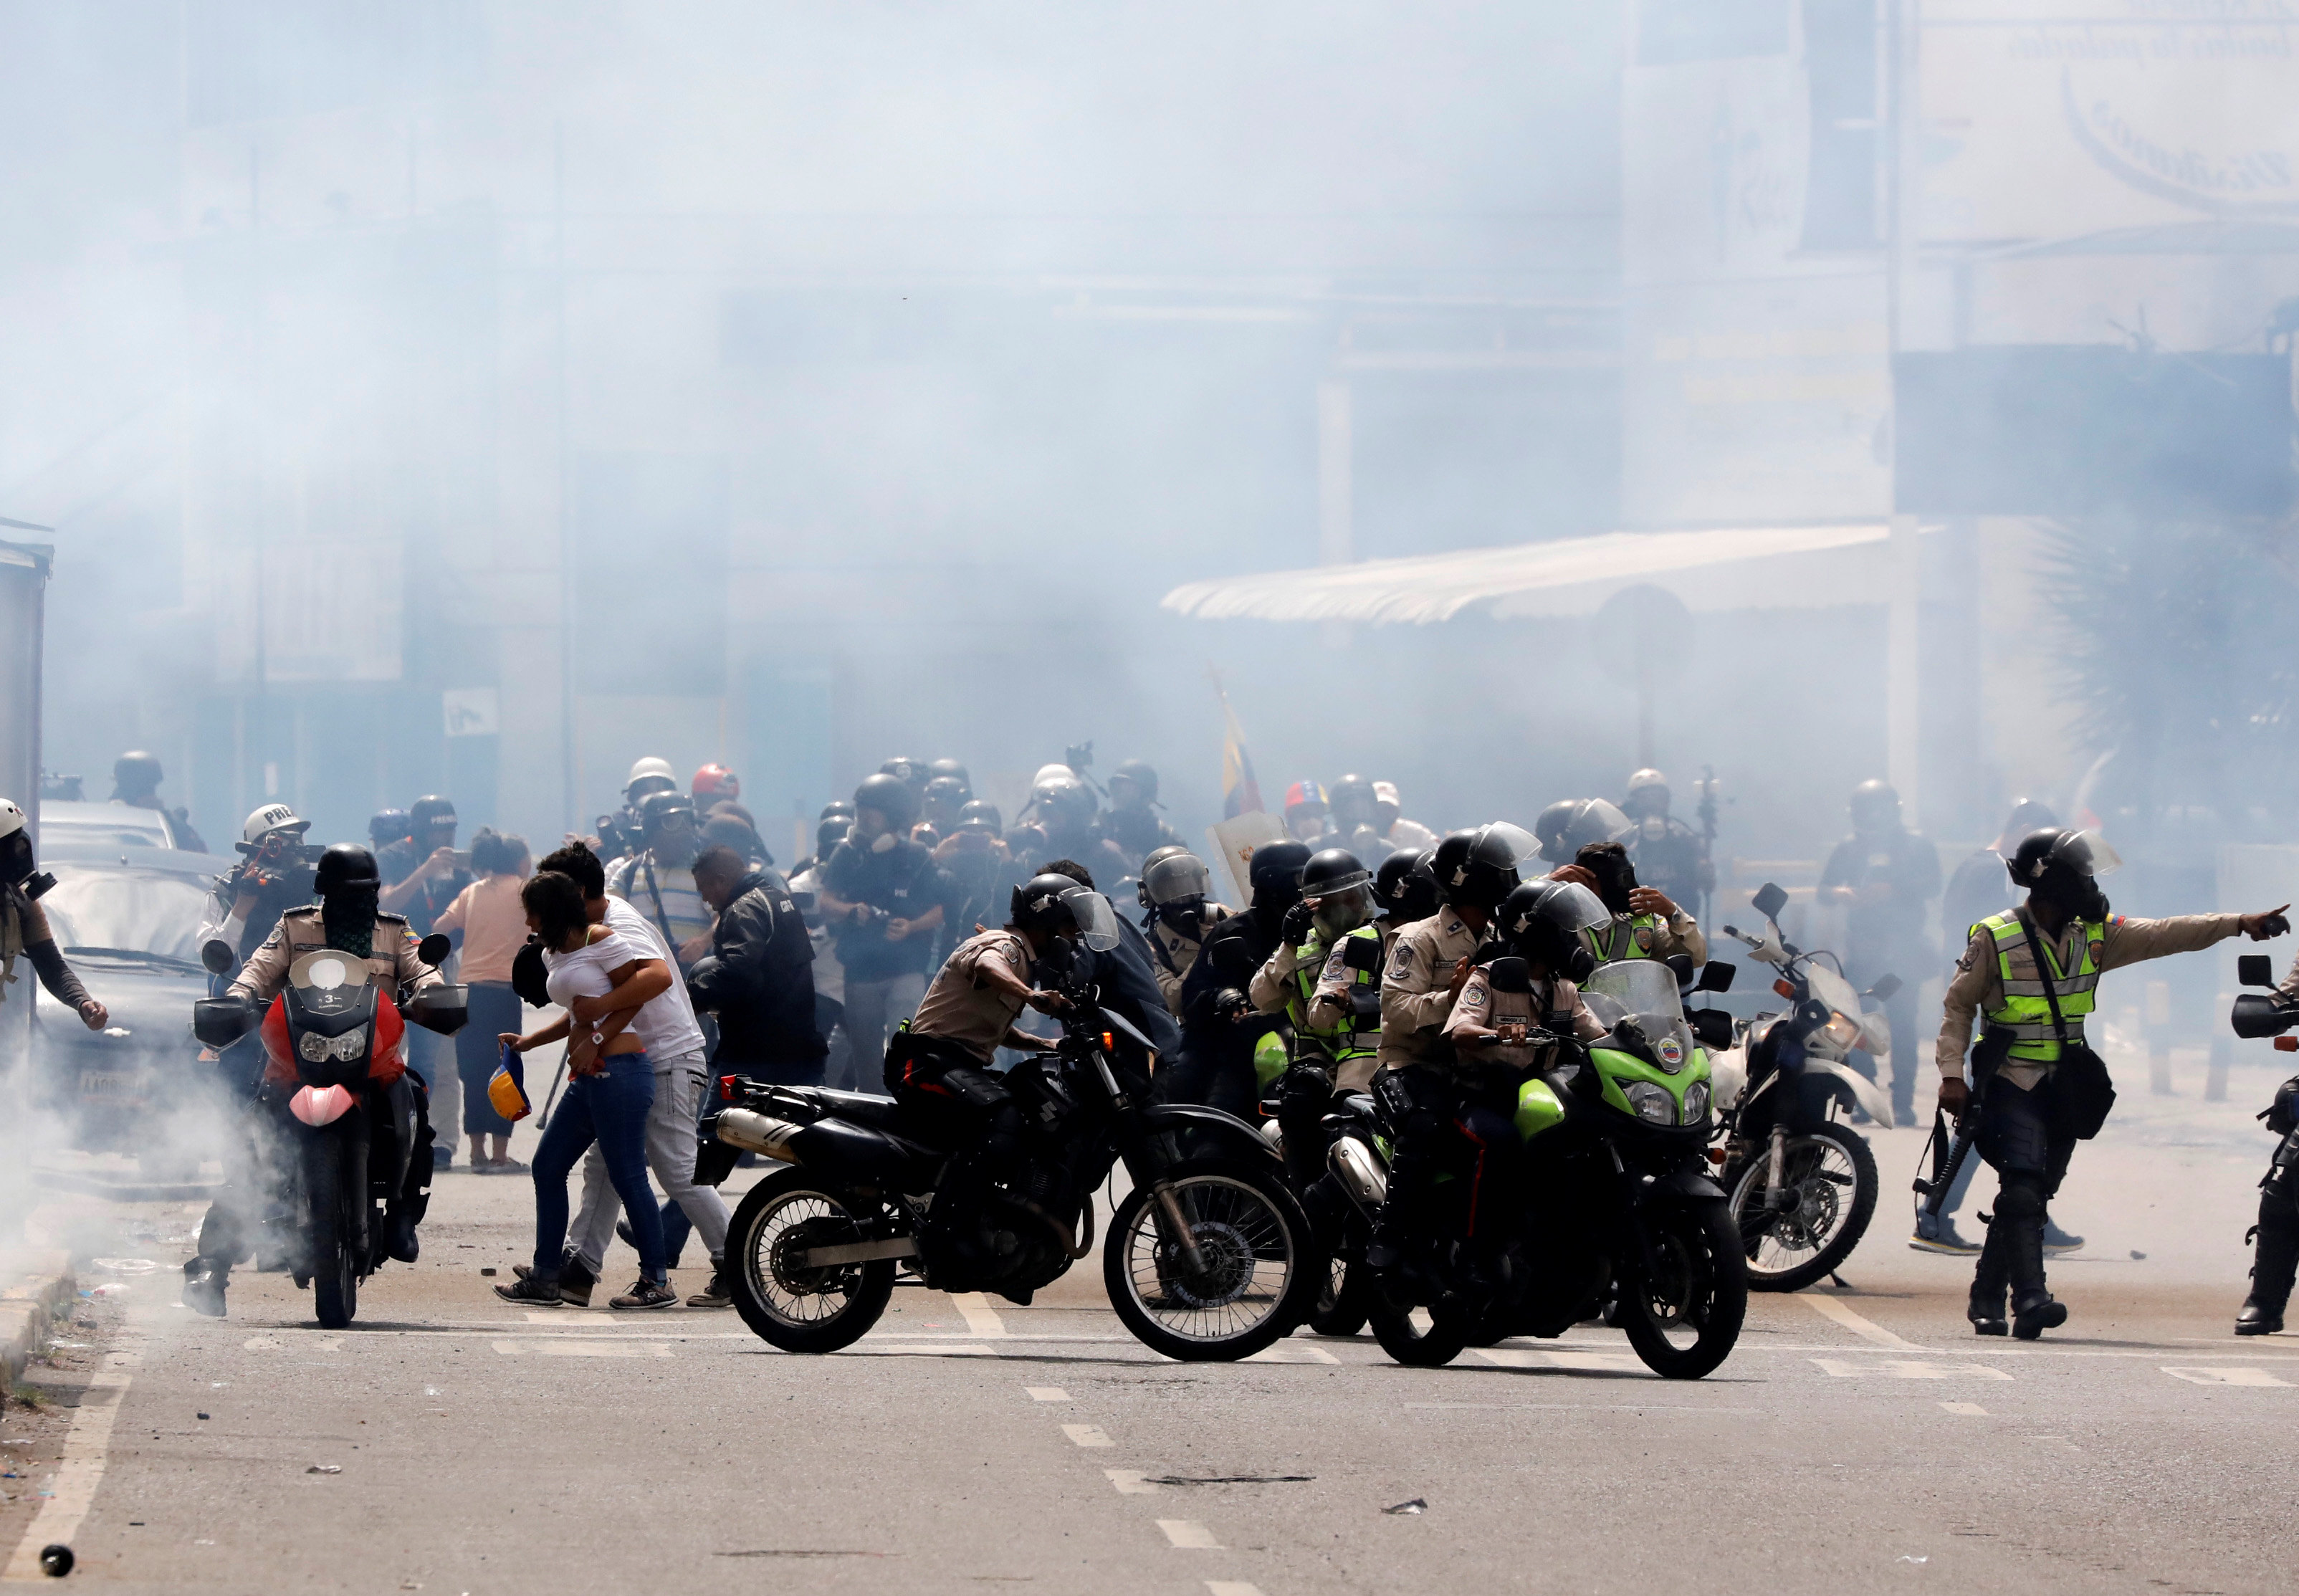 Riot security forces take up position while clashing with demonstrators rallying against Venezuela's President Nicolas Maduro in Caracas, Venezuela, June 10, 2017. REUTERS/Carlos Garcia Rawlins